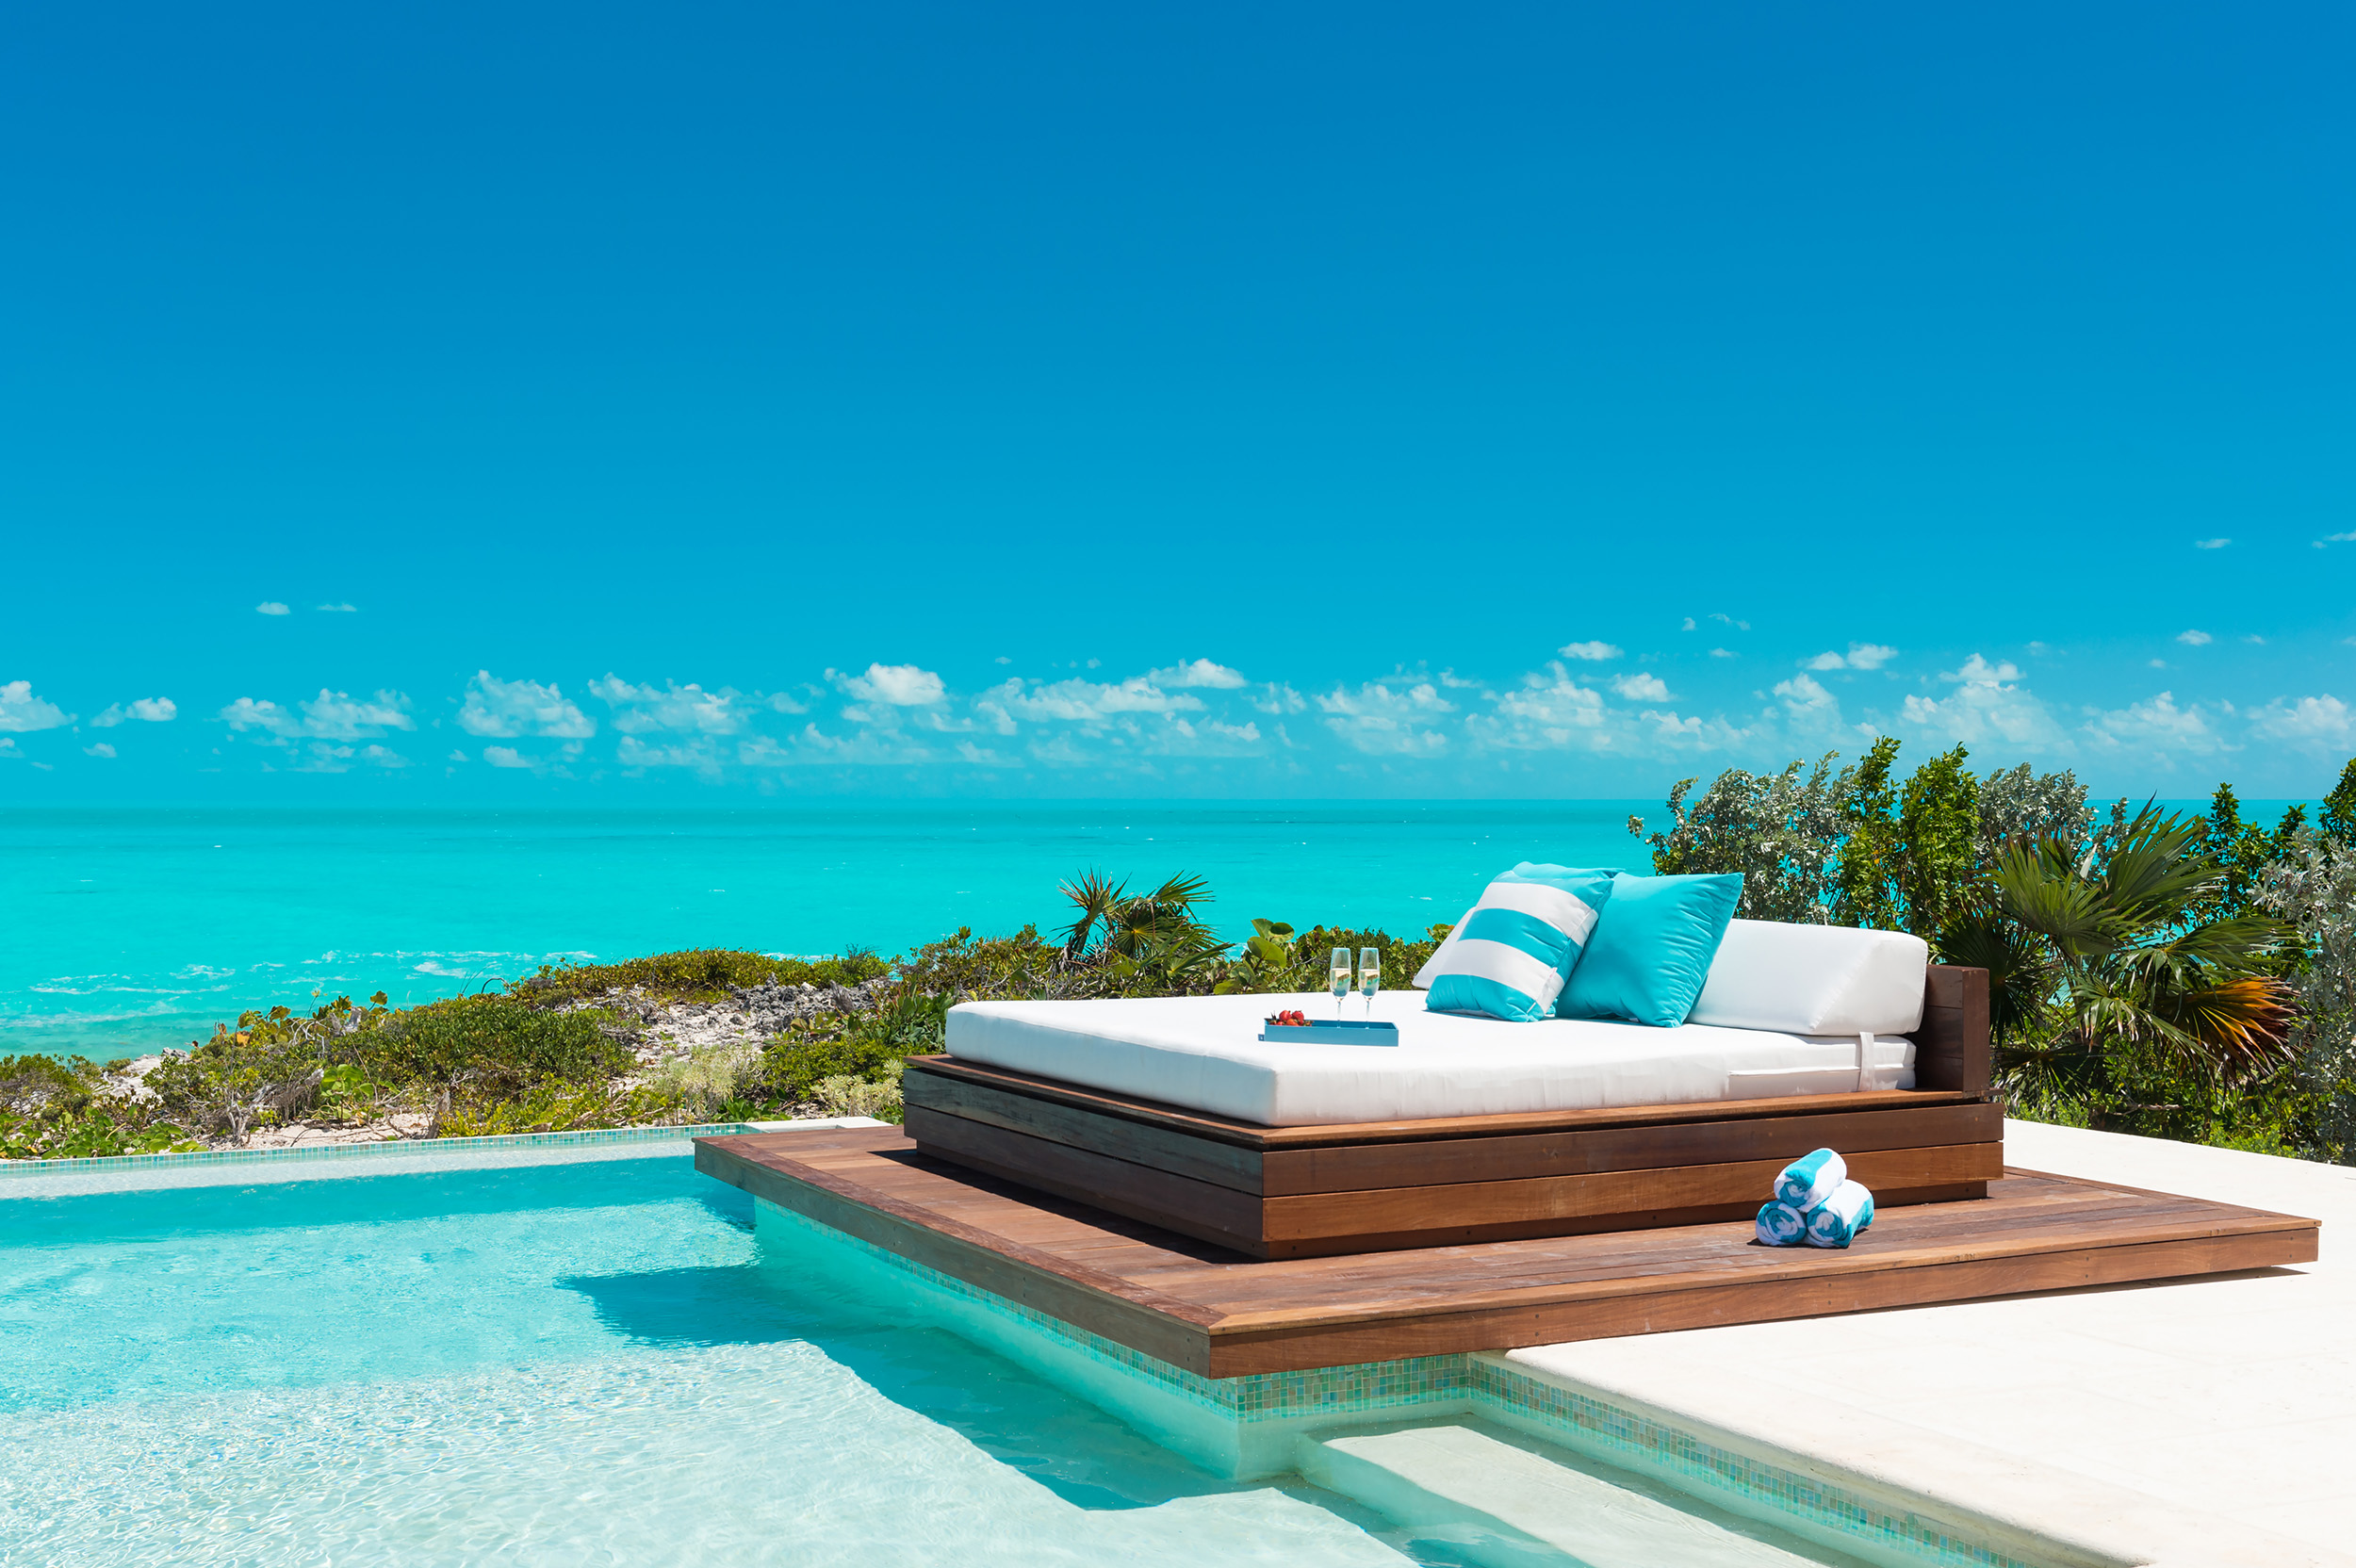 Villa Aguaribay - view of the daybed with the ocean beyond